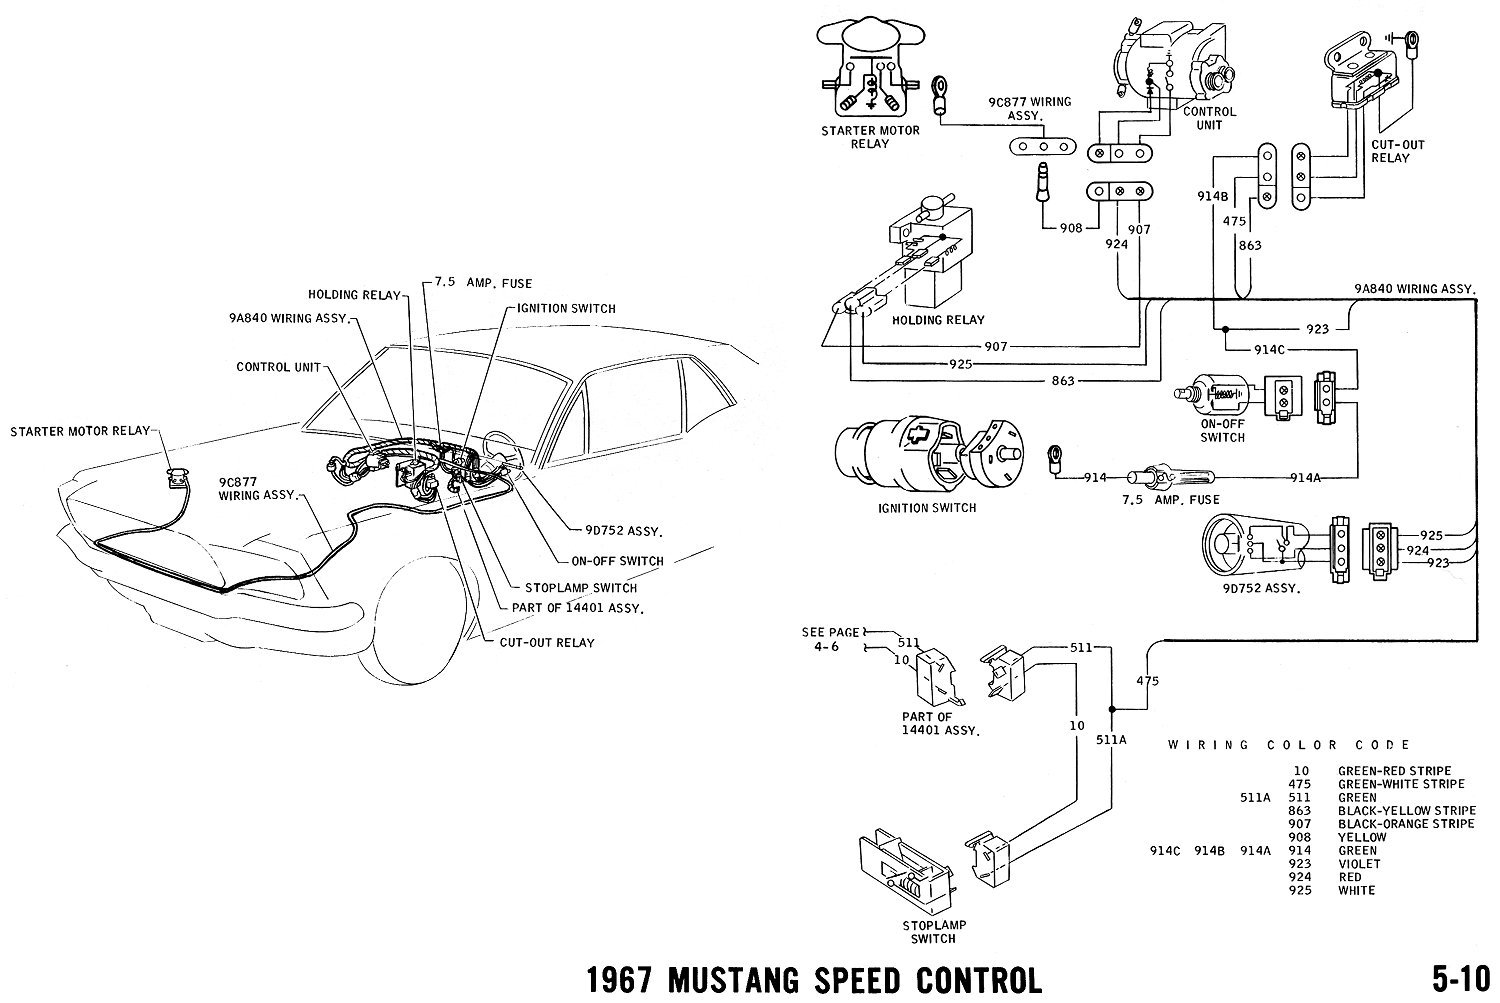 67speed 1967 mustang wiring and vacuum diagrams average joe restoration 1965 mustang alternator wiring diagram at bakdesigns.co